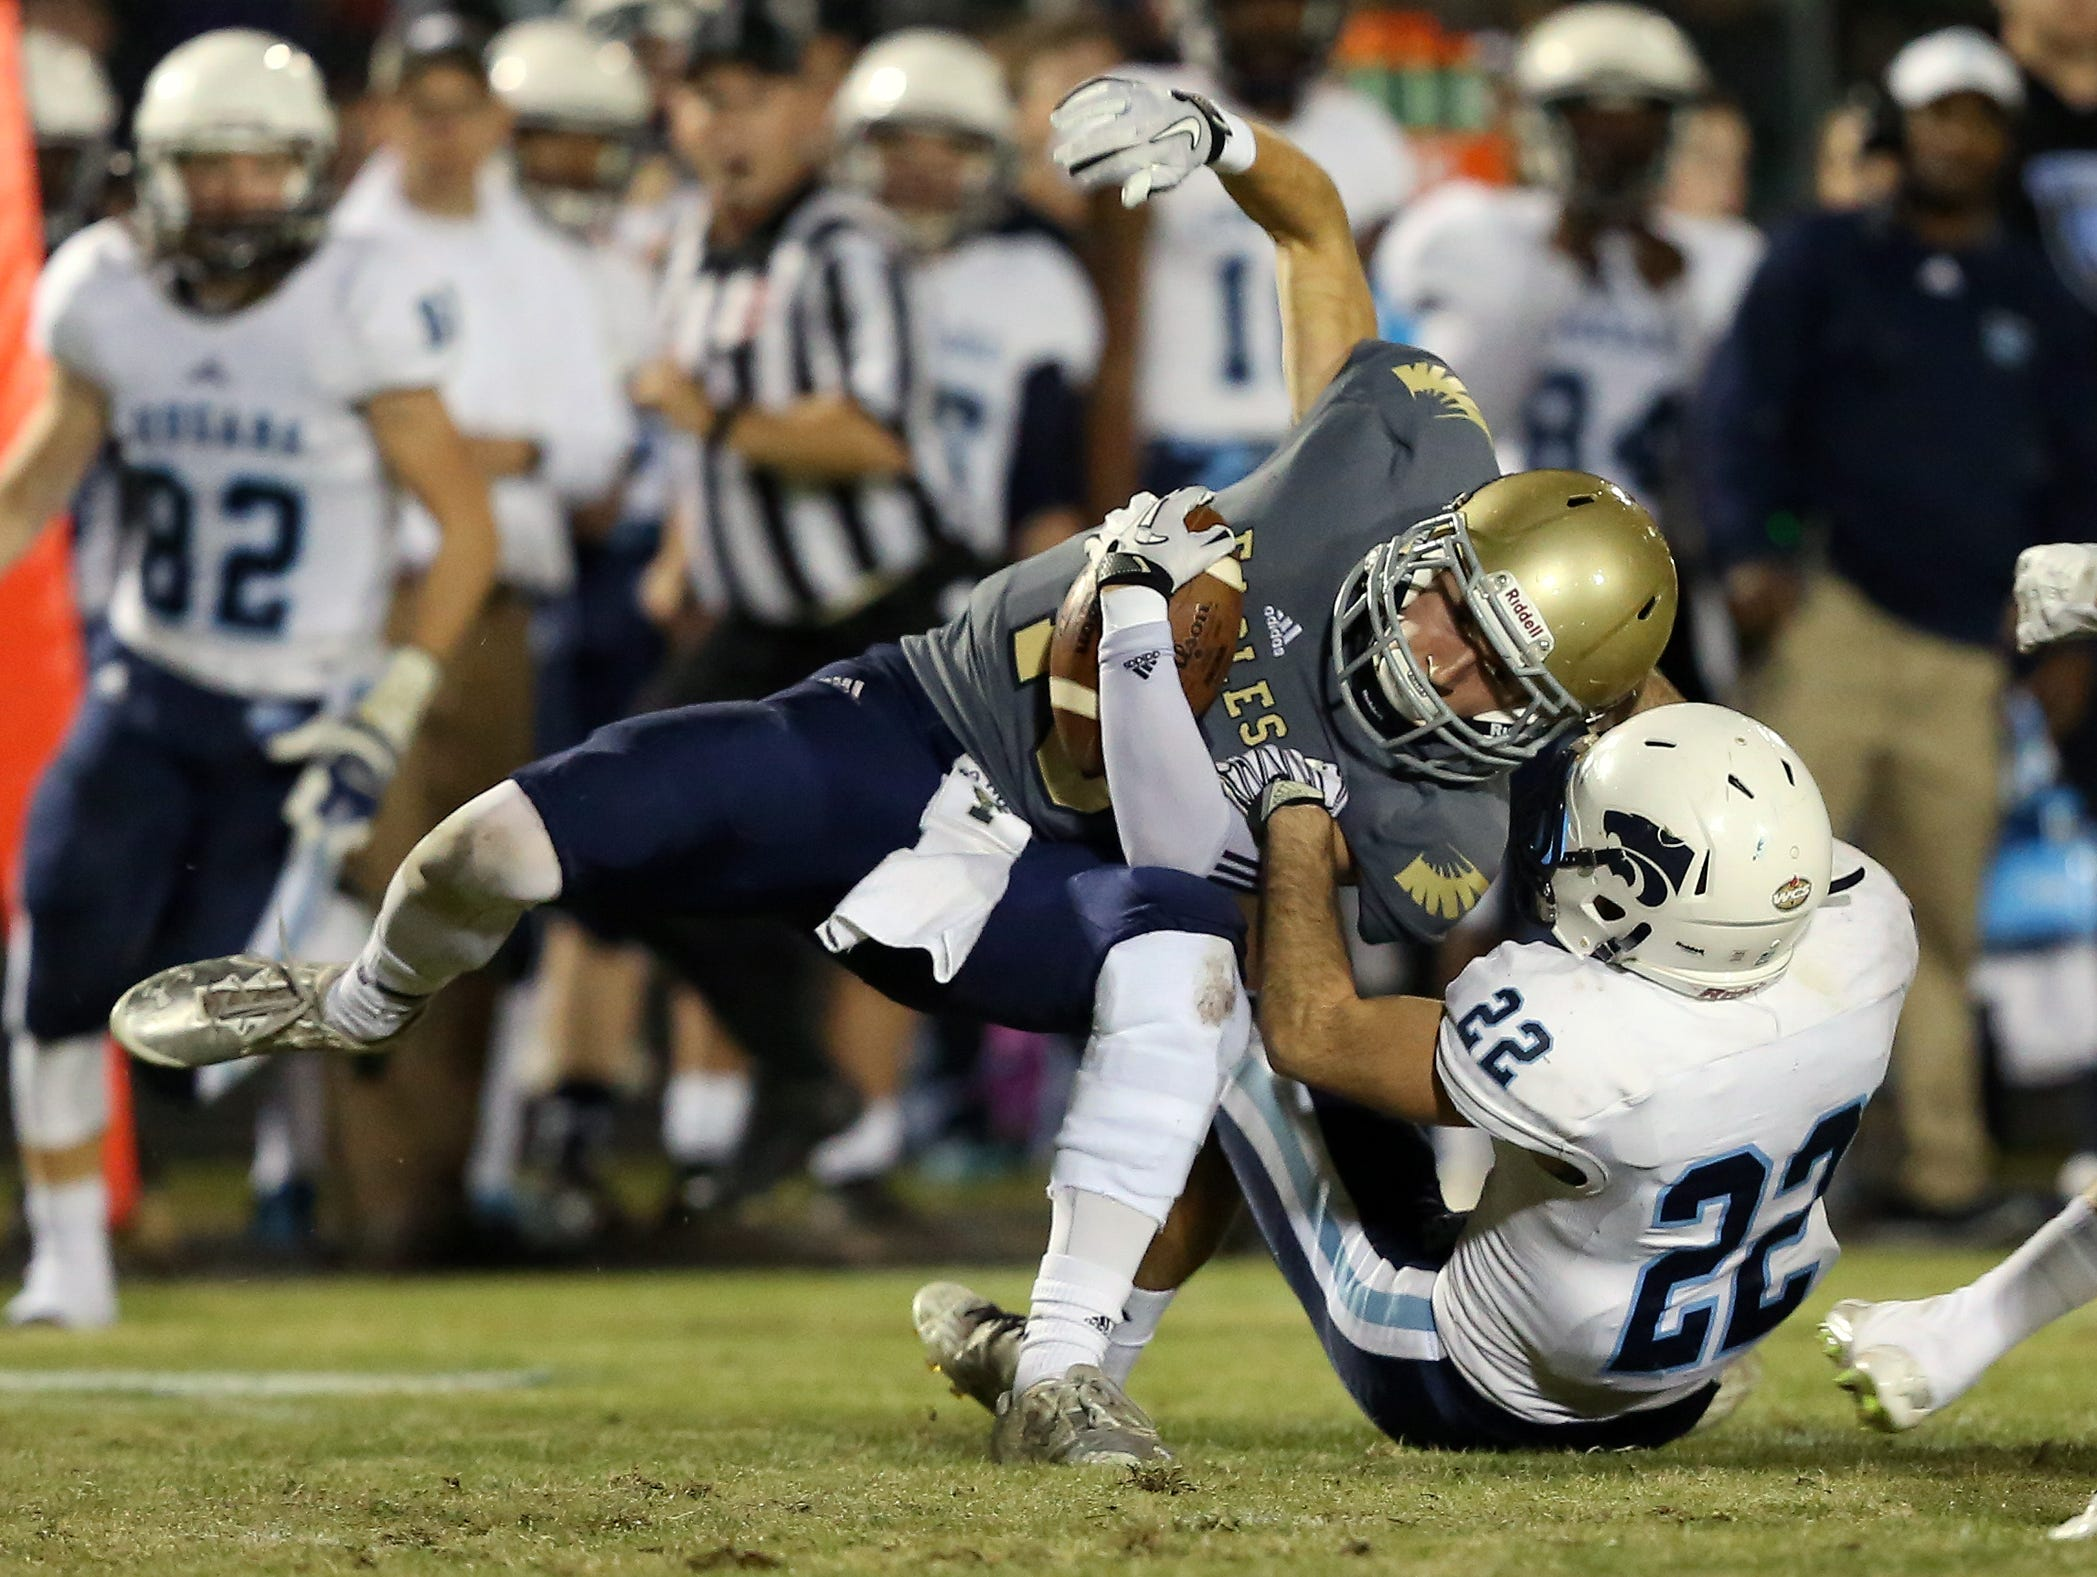 Independence's Nate Johnson is brought done by Centennial's Peyton Pisacane (22)